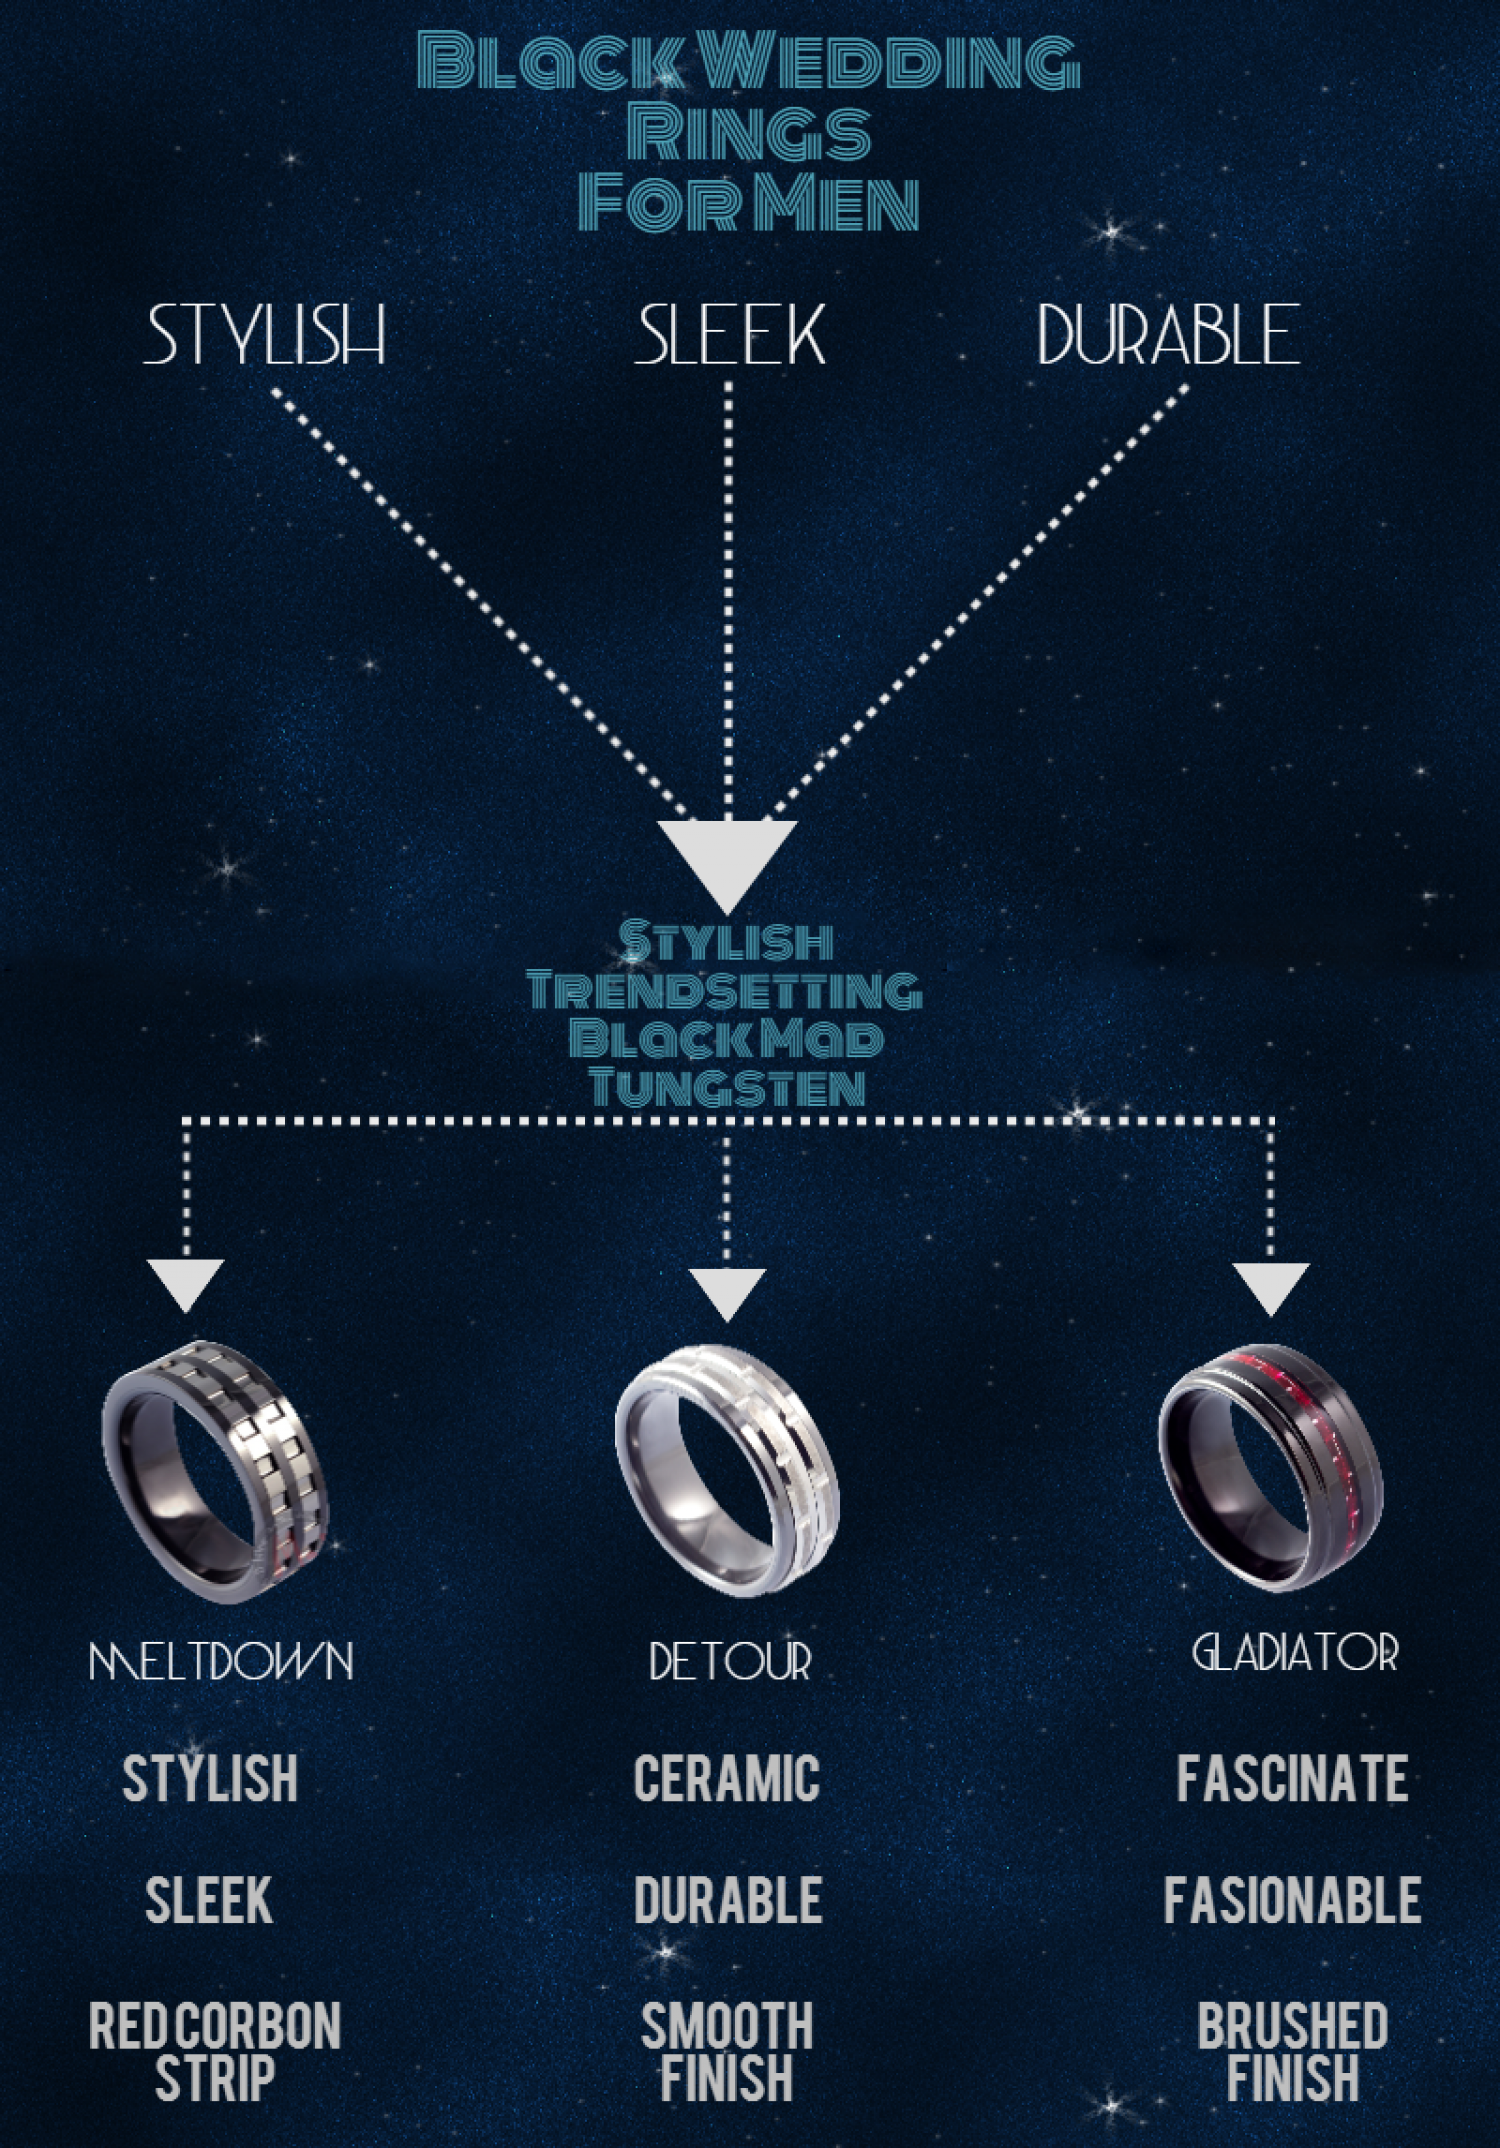 black tungsten wedding rings for men infographic - Tungsten Wedding Rings For Men